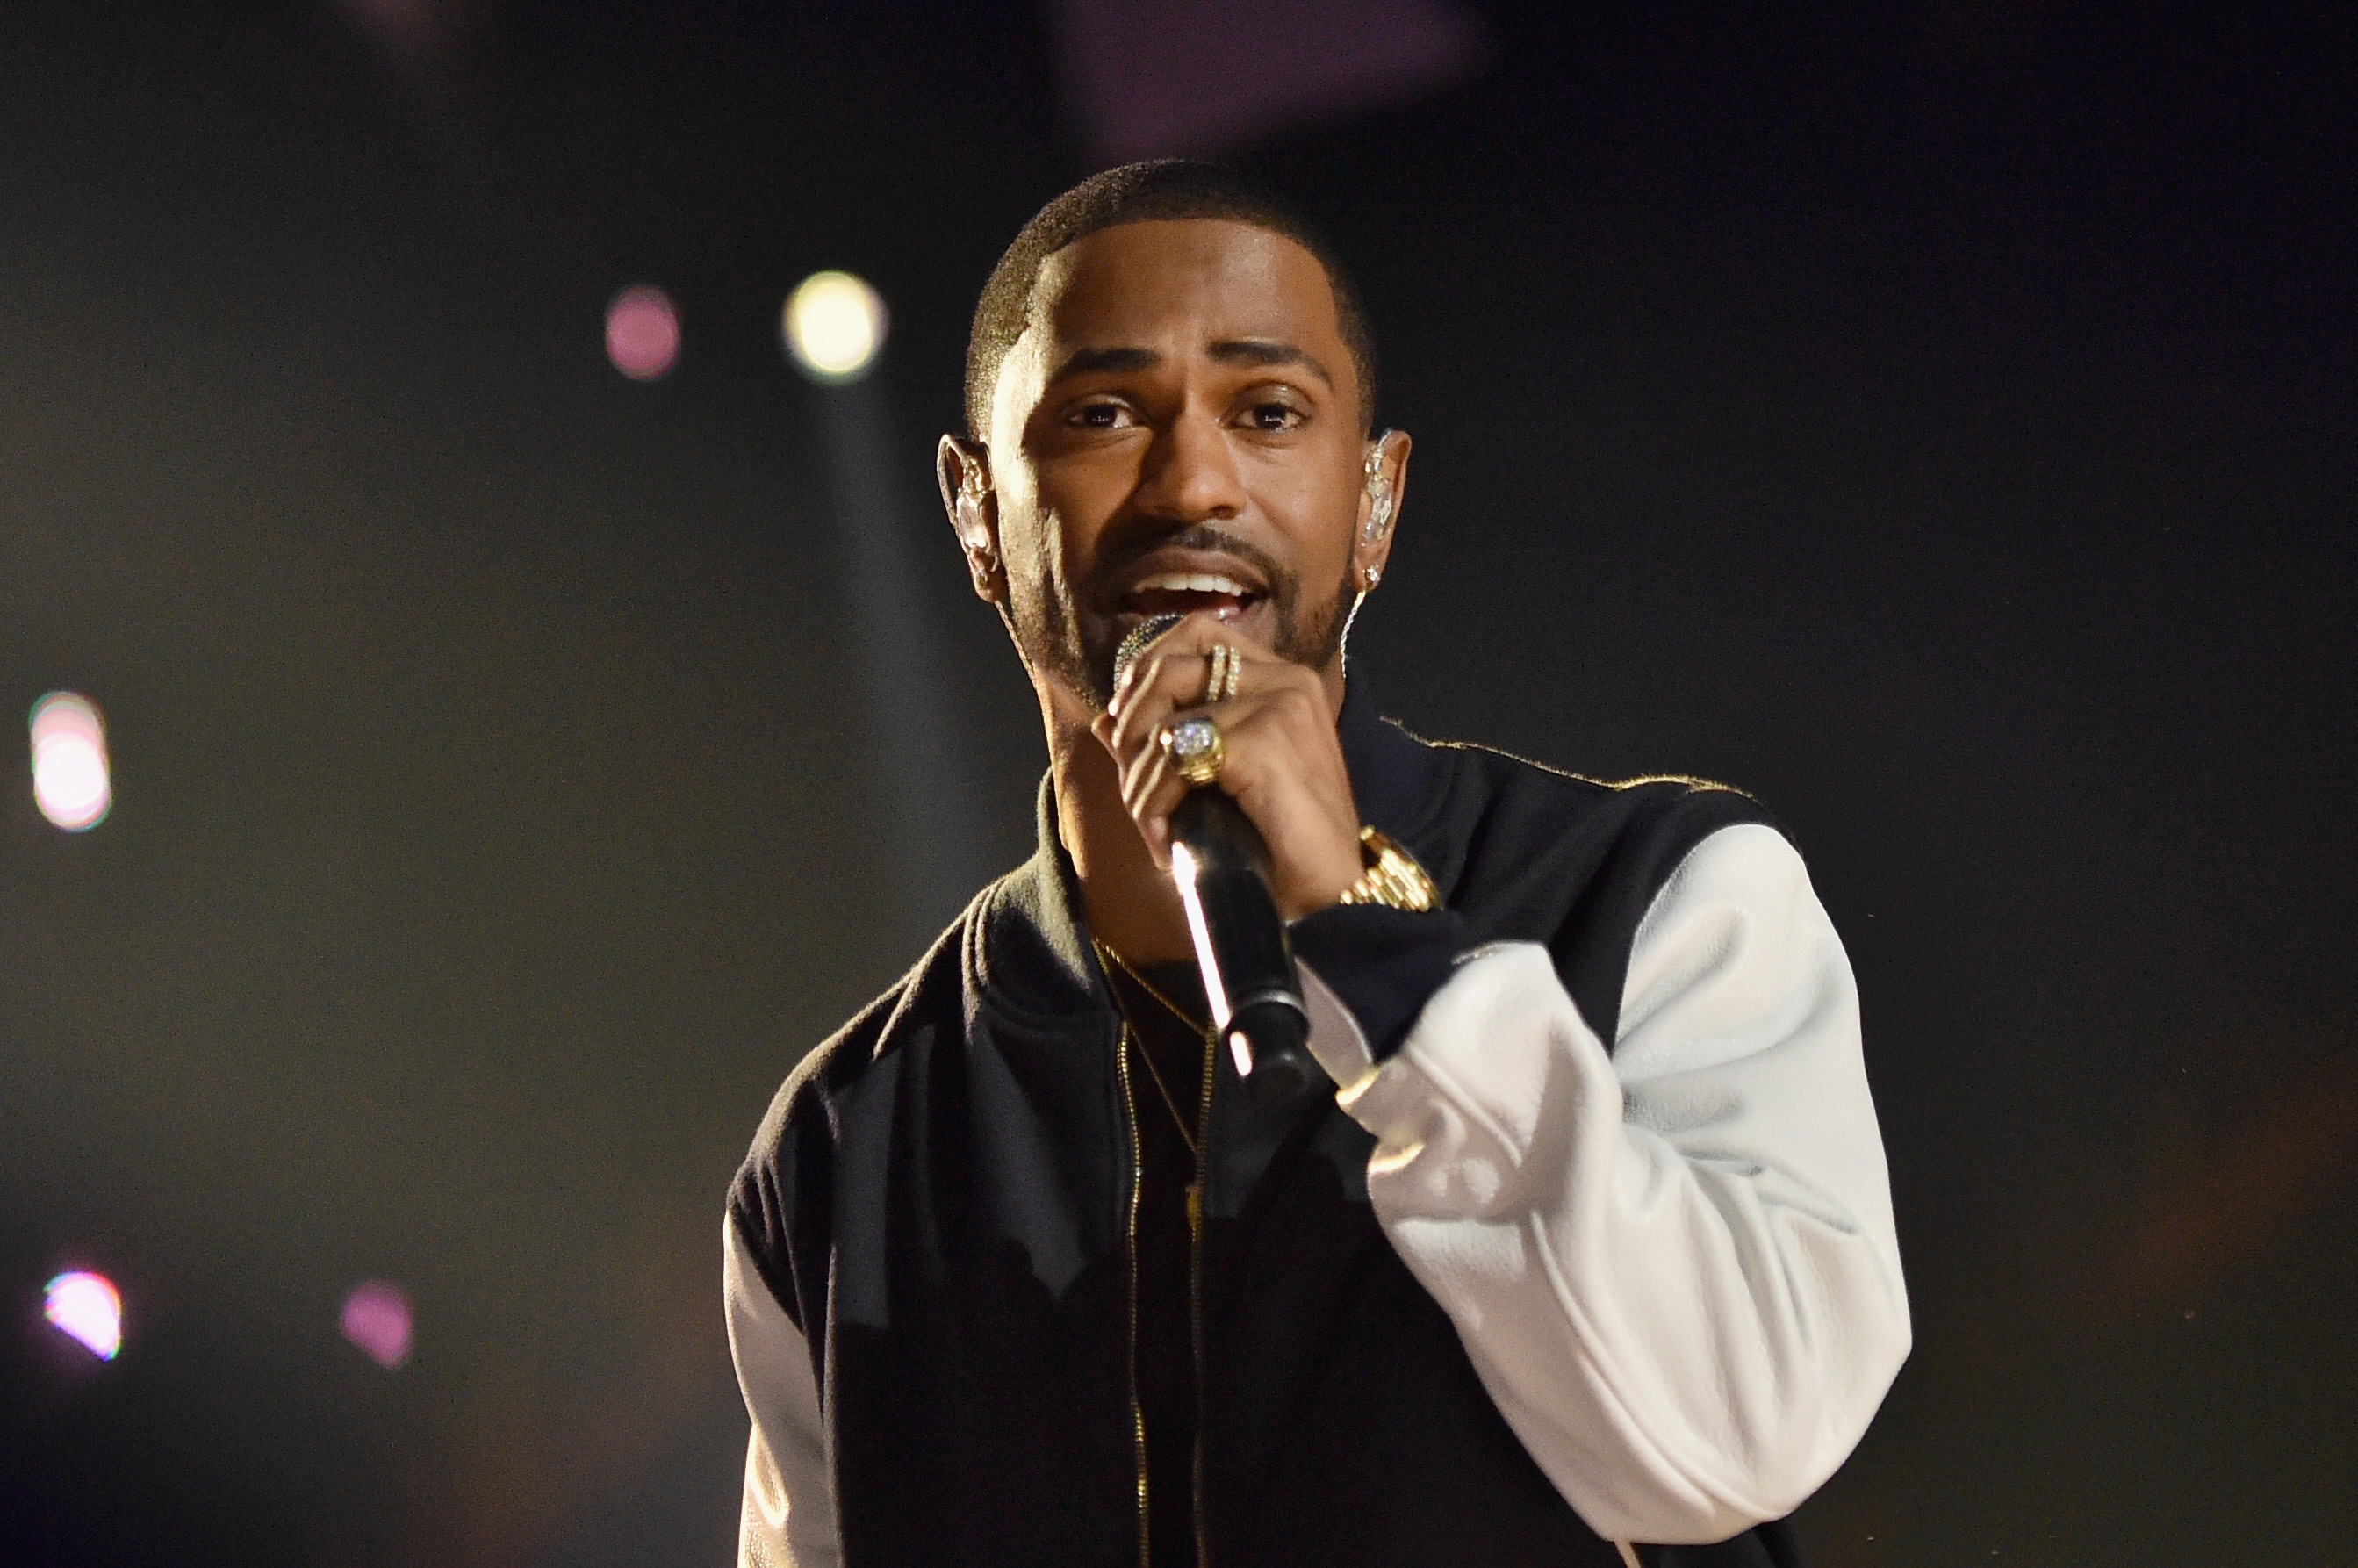 Rapper Big Sean performs onstage at WE Day California      at the Forum on April         in Inglewood  California  Source  Mike Windle Getty Images Mic